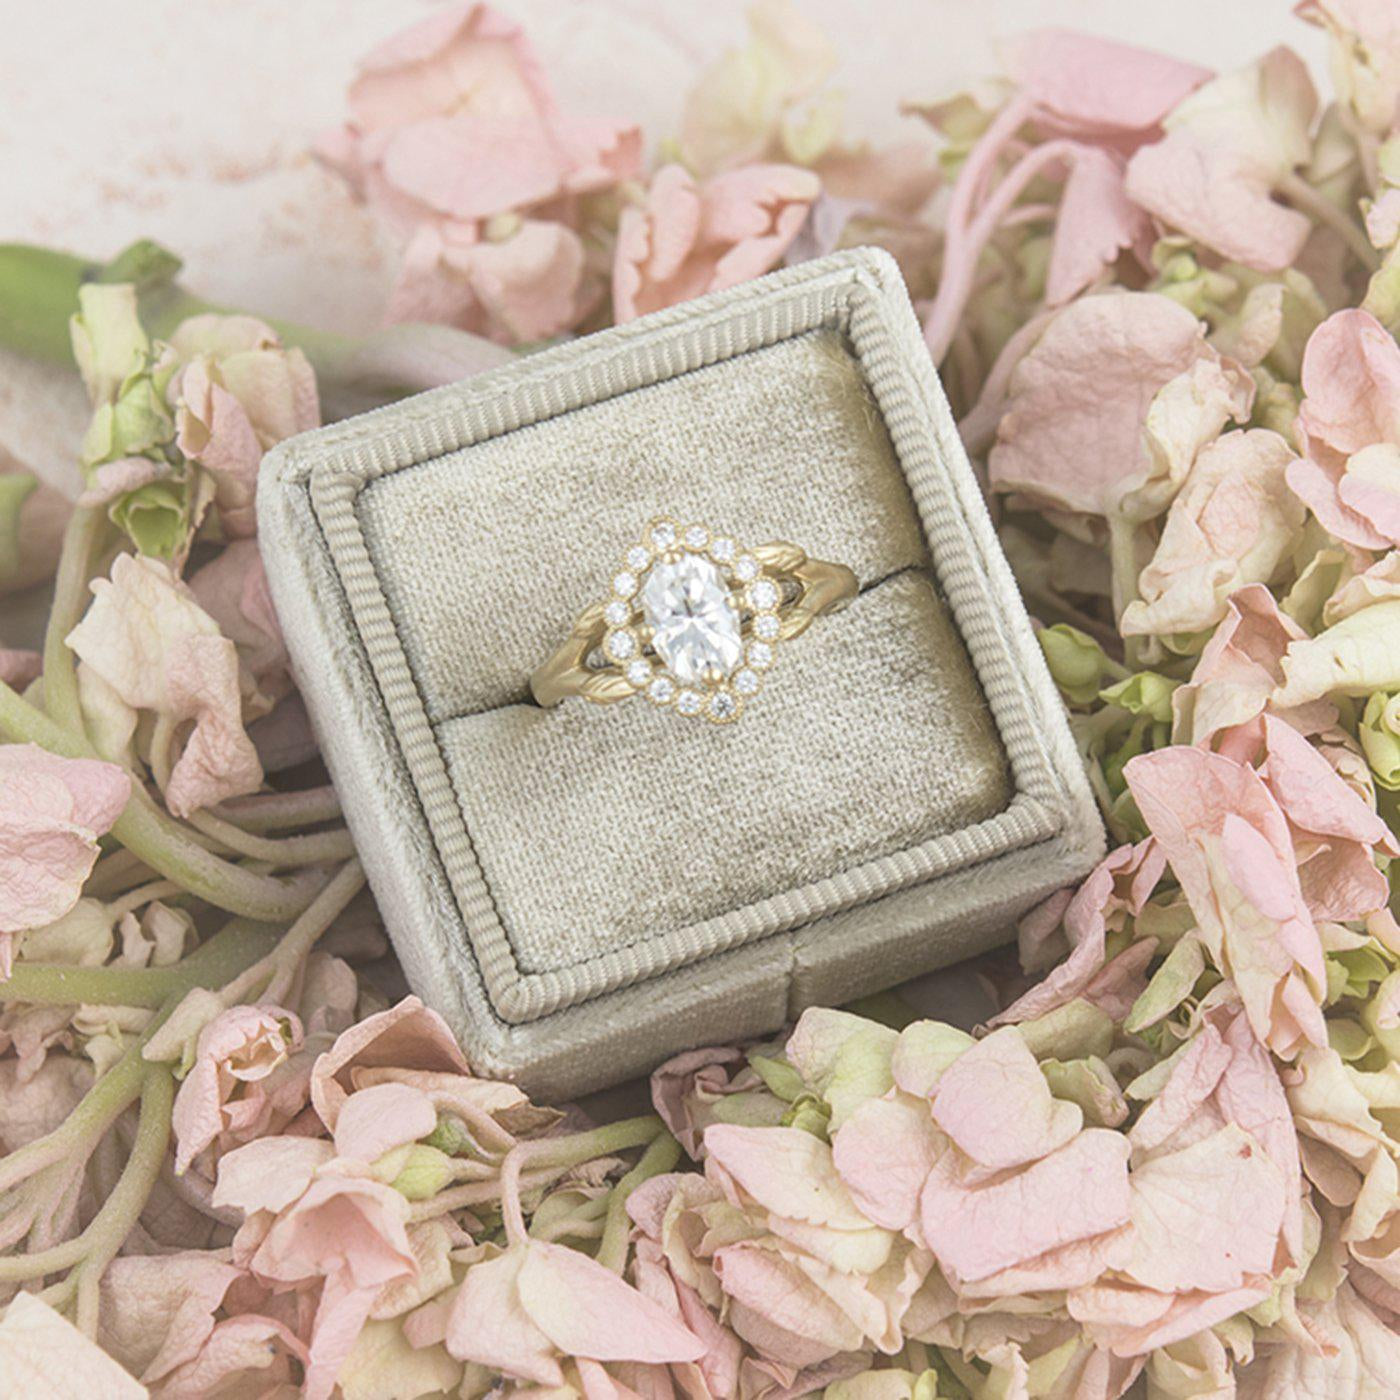 5 things you should know about buying an engagement ring online